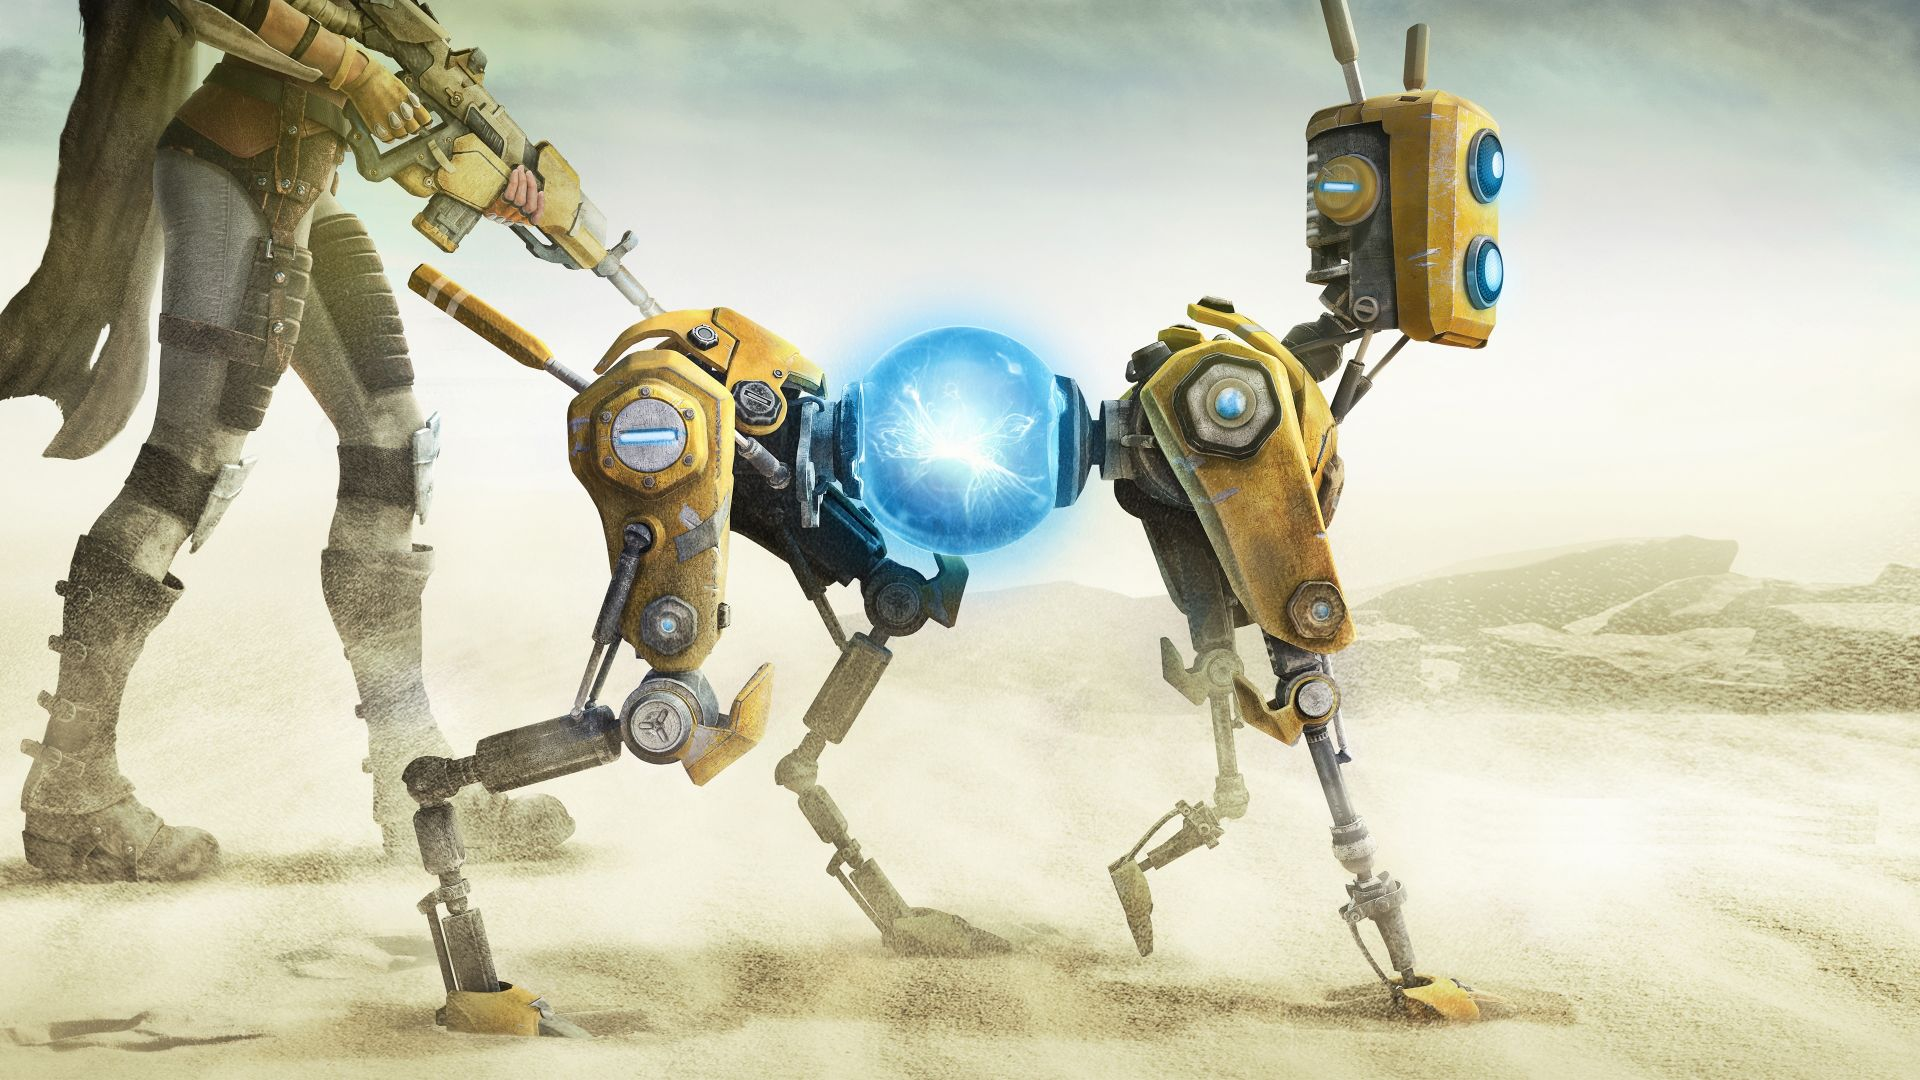 ReCore, Best Games, PC, PS4, PlayStation 4, Xbox, Xbox 360, Xbox One (horizontal)